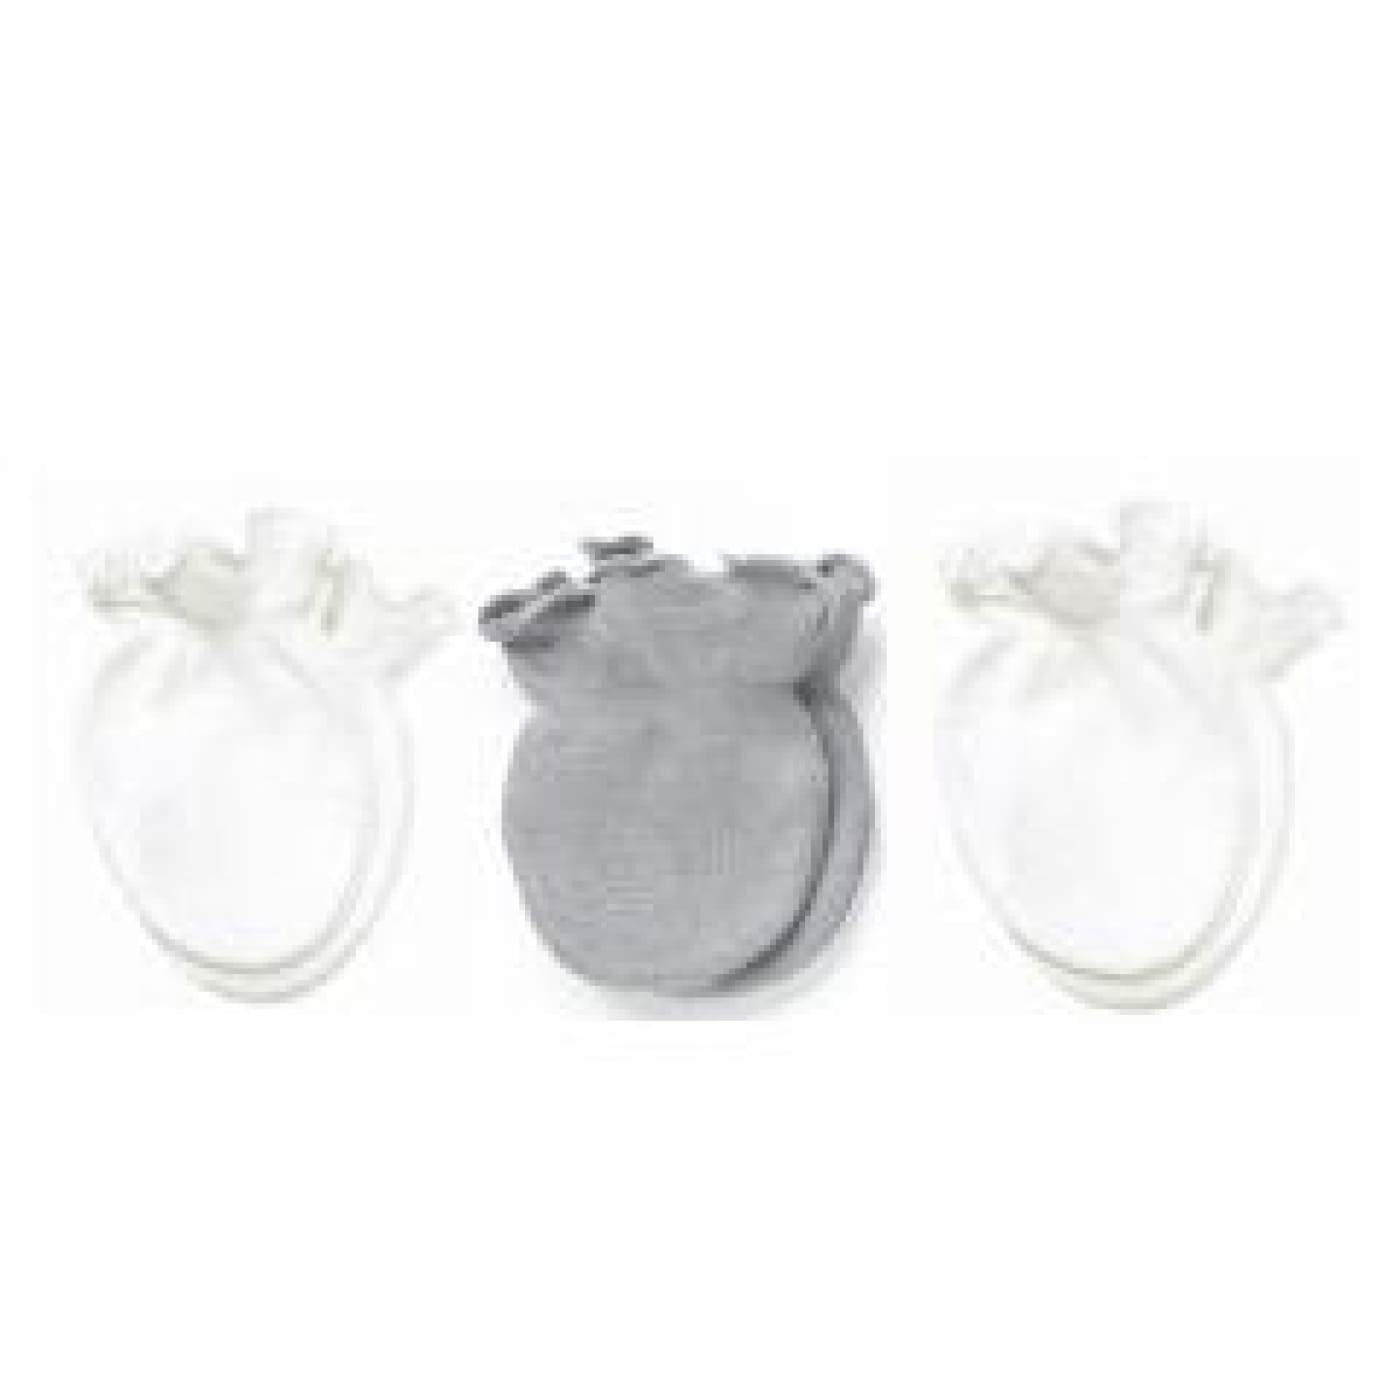 Playette Preemie Mittens - Grey/White 3PK - BABY & TODDLER CLOTHING - MITTENS/SOCKS/SHOES